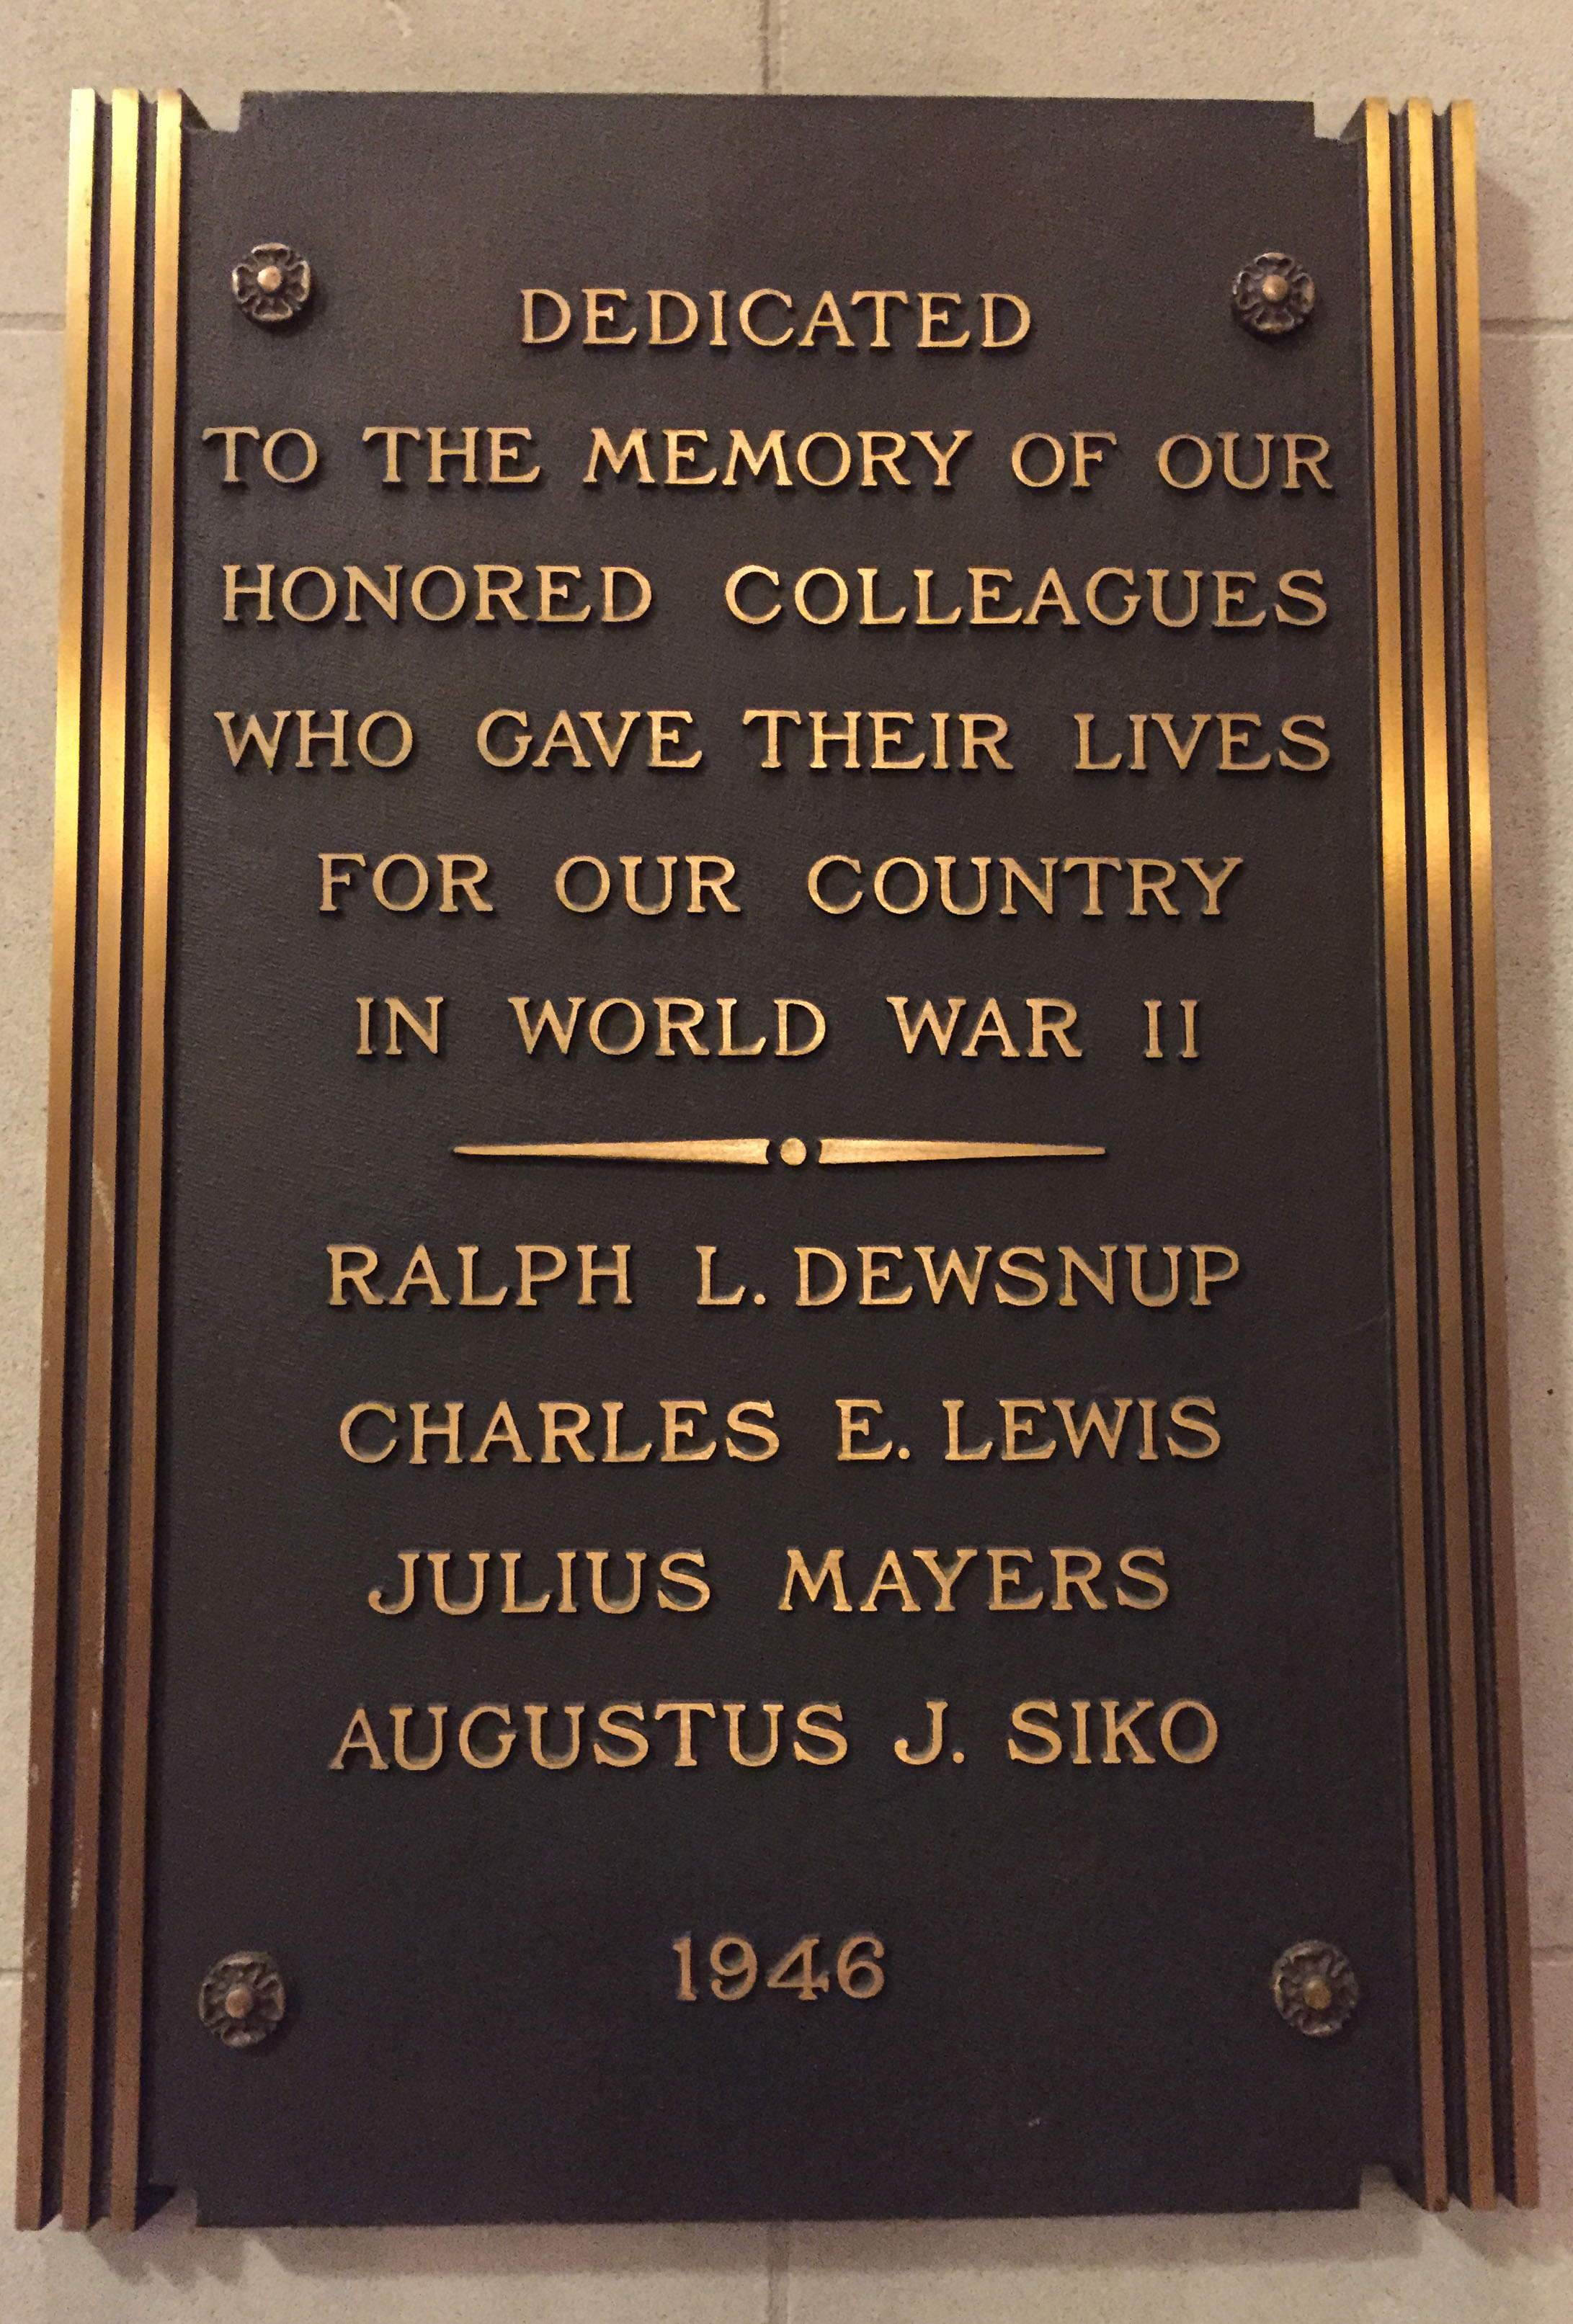 National Archives Memorial Plaque (Photo courtesy of the National Archives History Office)